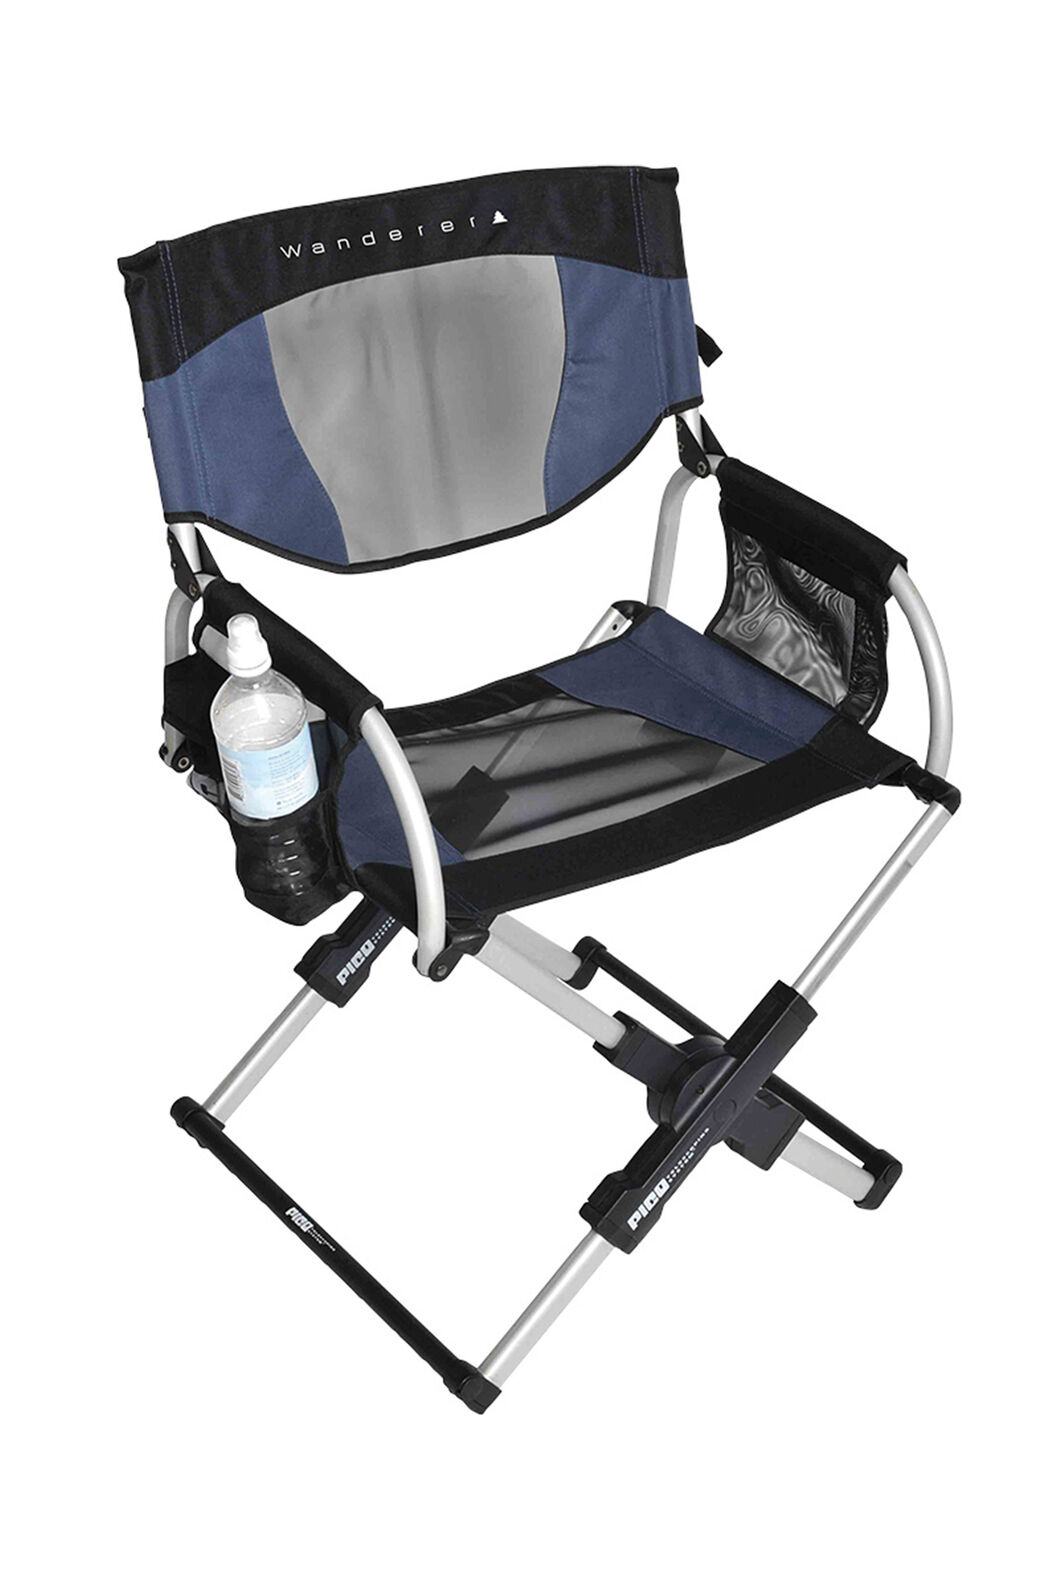 Wanderer Pico Folding Camp Chair, None, hi-res